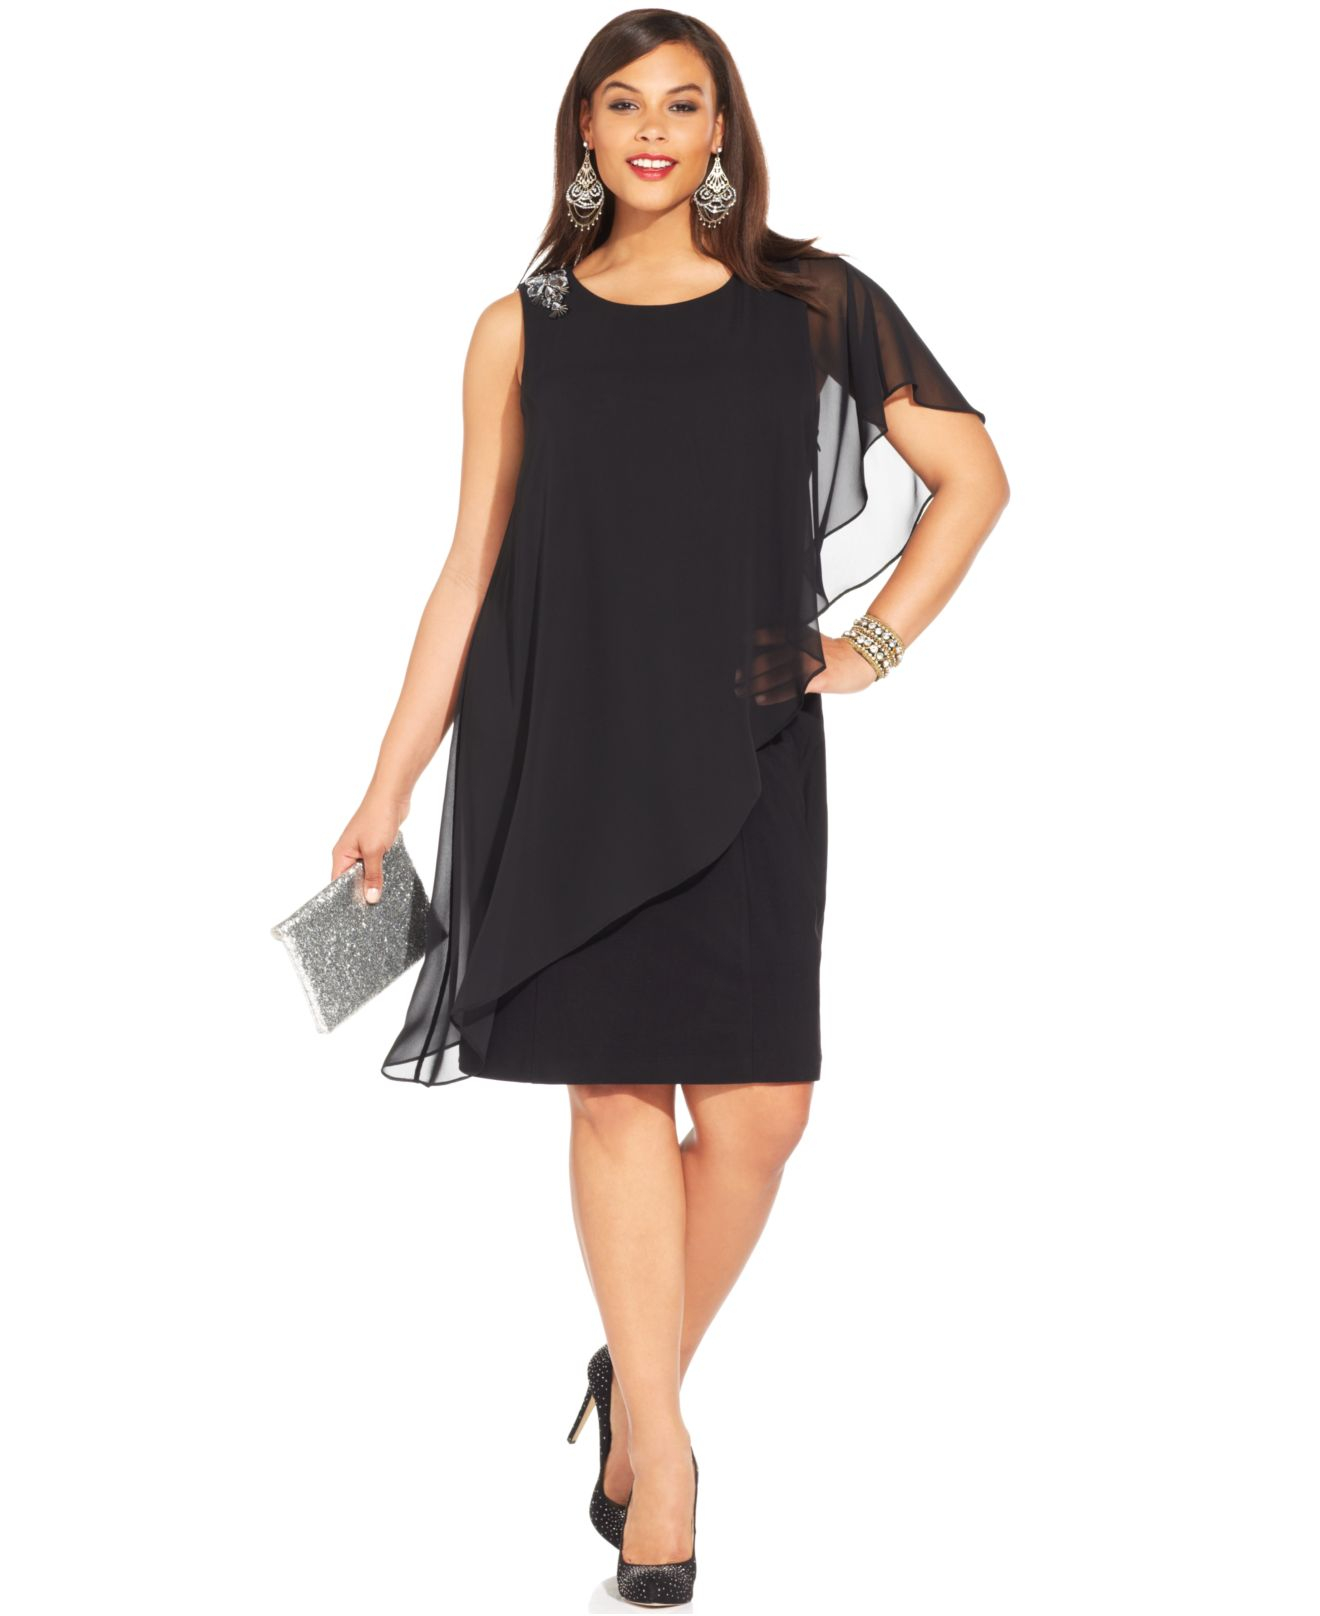 Women\'s Black Plus Size One-Shoulder Chiffon Overlay Dress